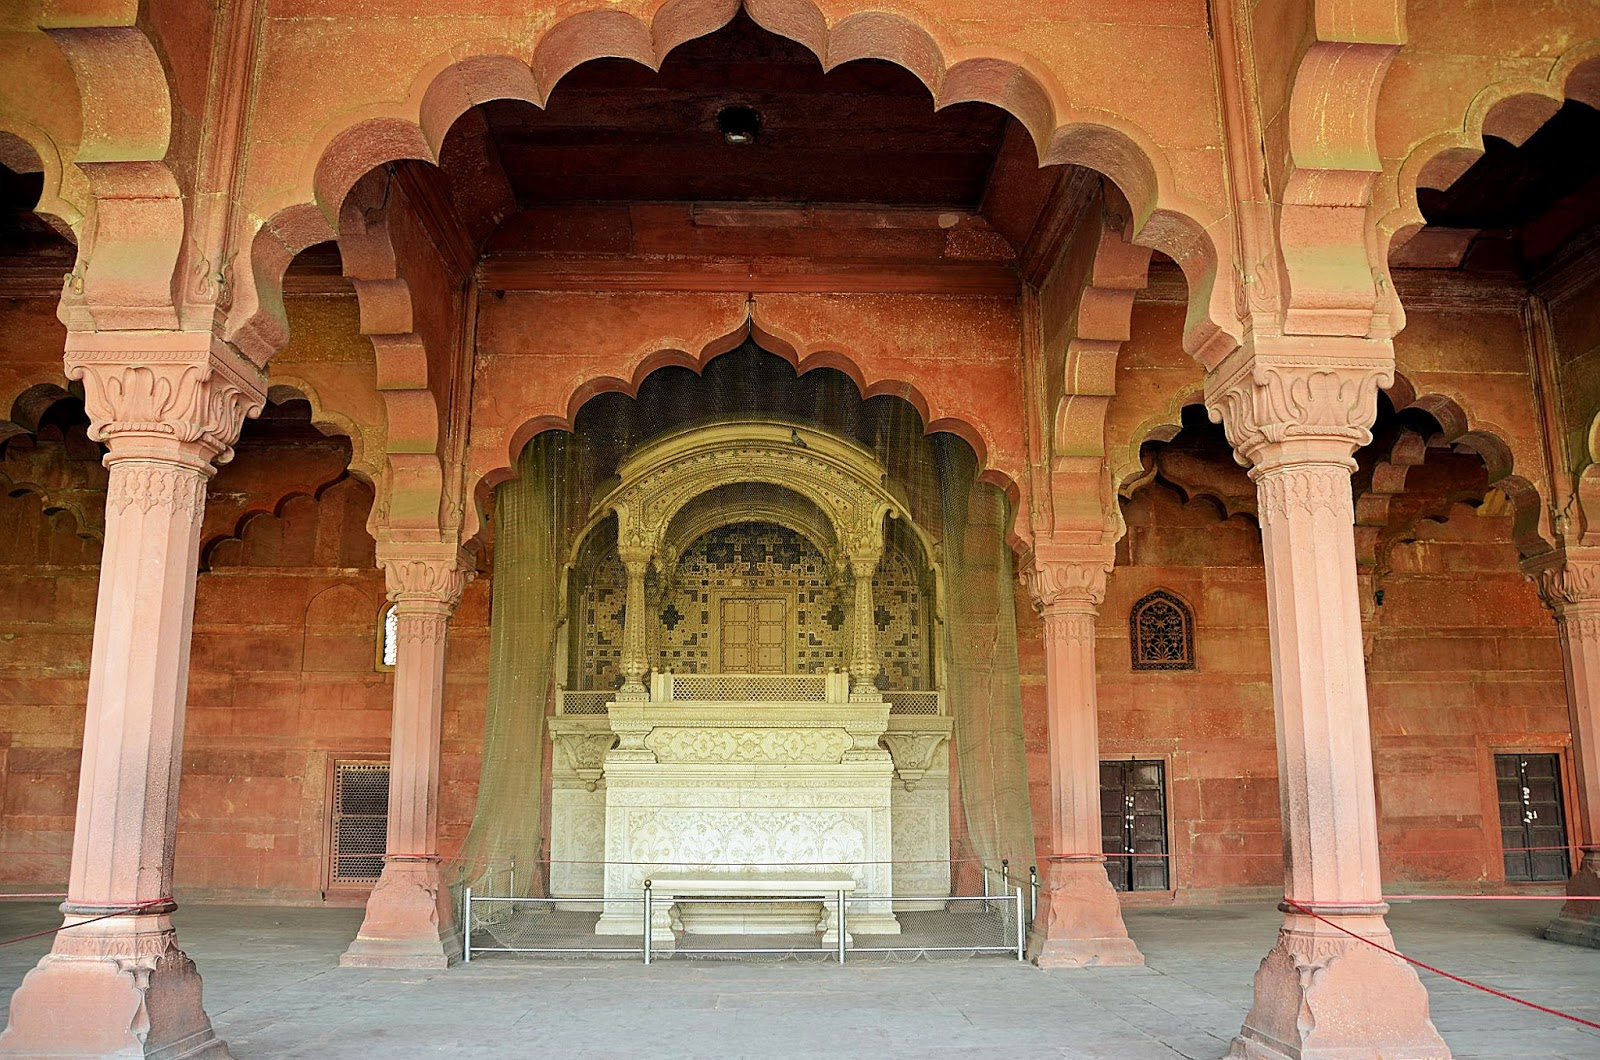 Pixelated memories diwan i am red fort new delhi for Diwan i aam images